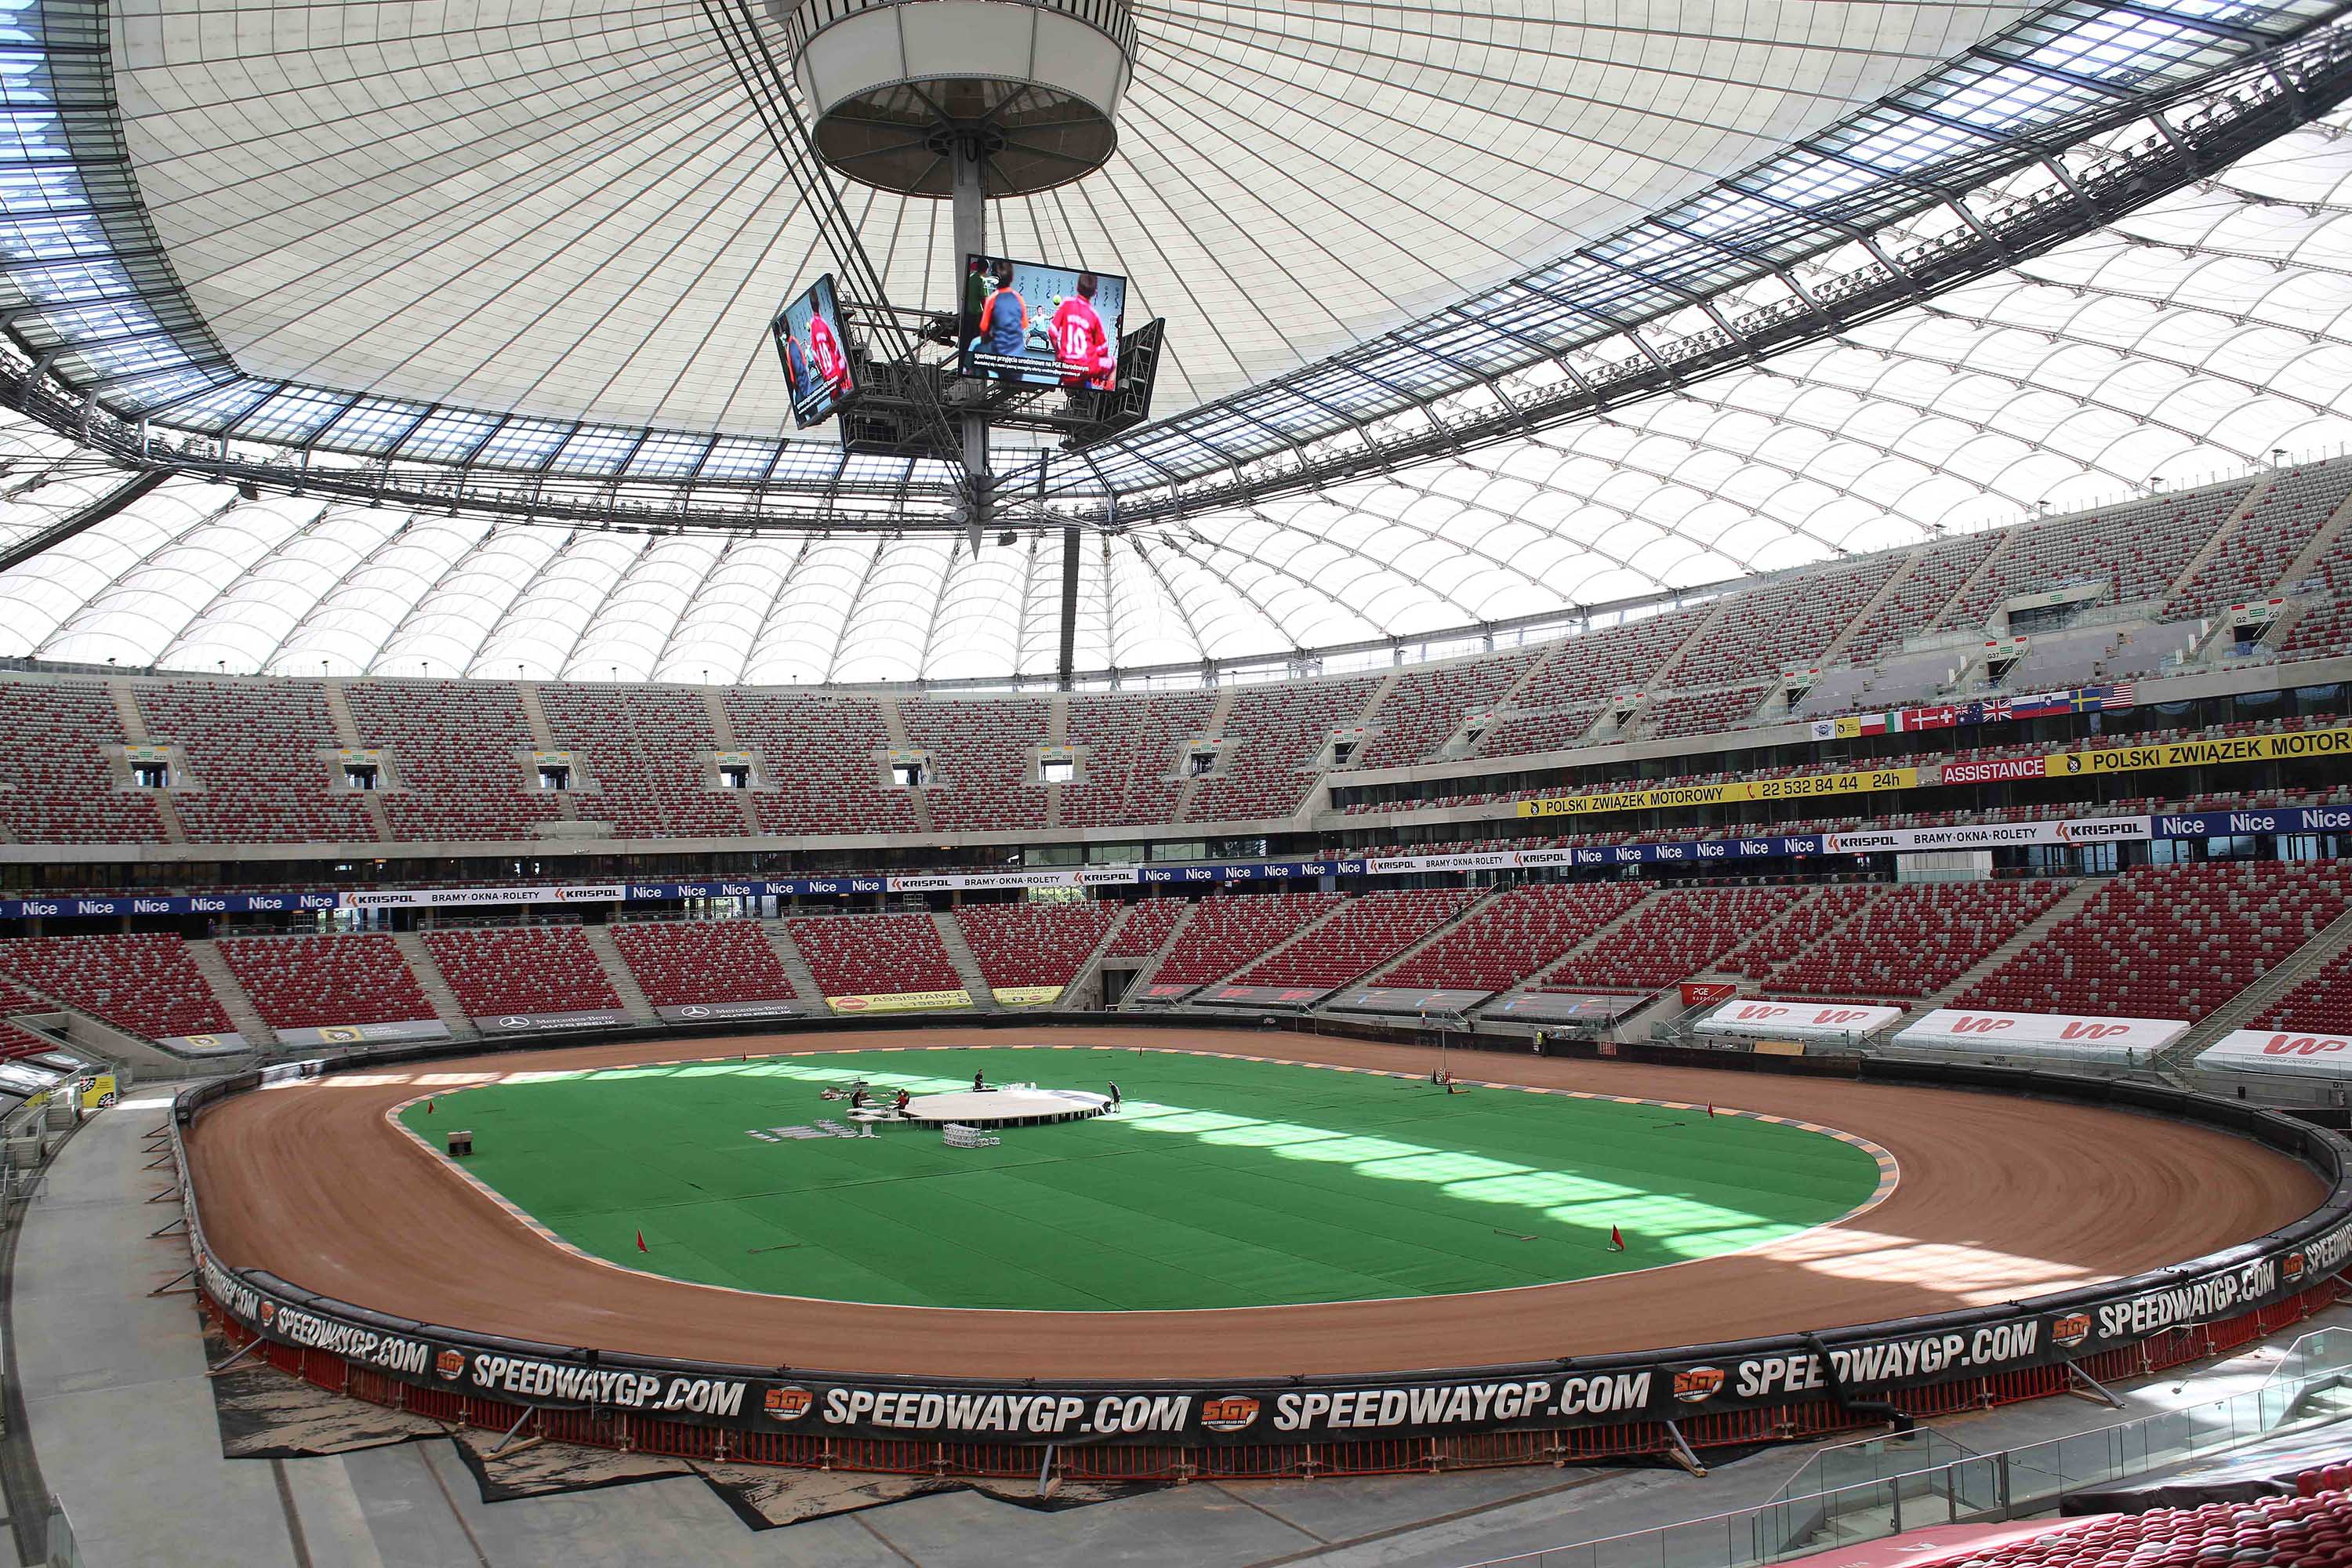 Warsaw's Narodowy stadium is pictured in May 2018.